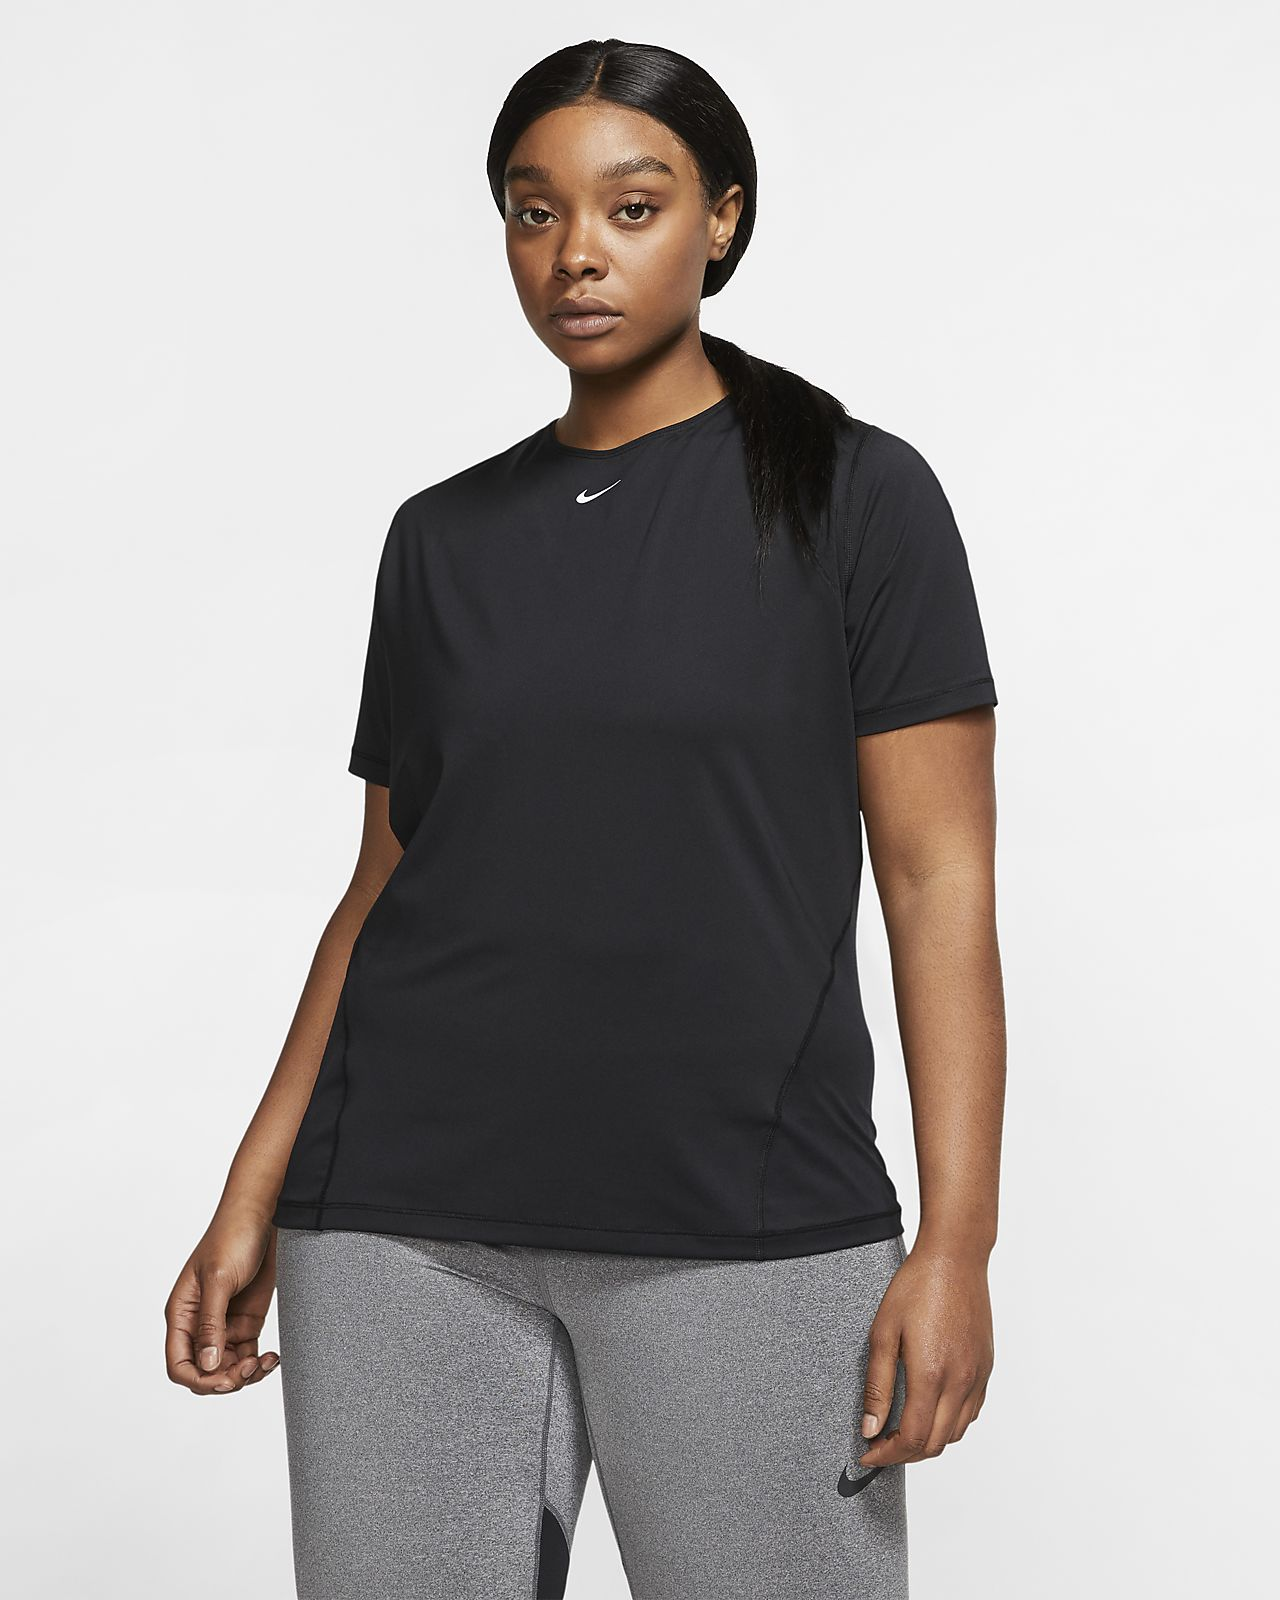 Nike Pro Women's Mesh Top (Plus Size)